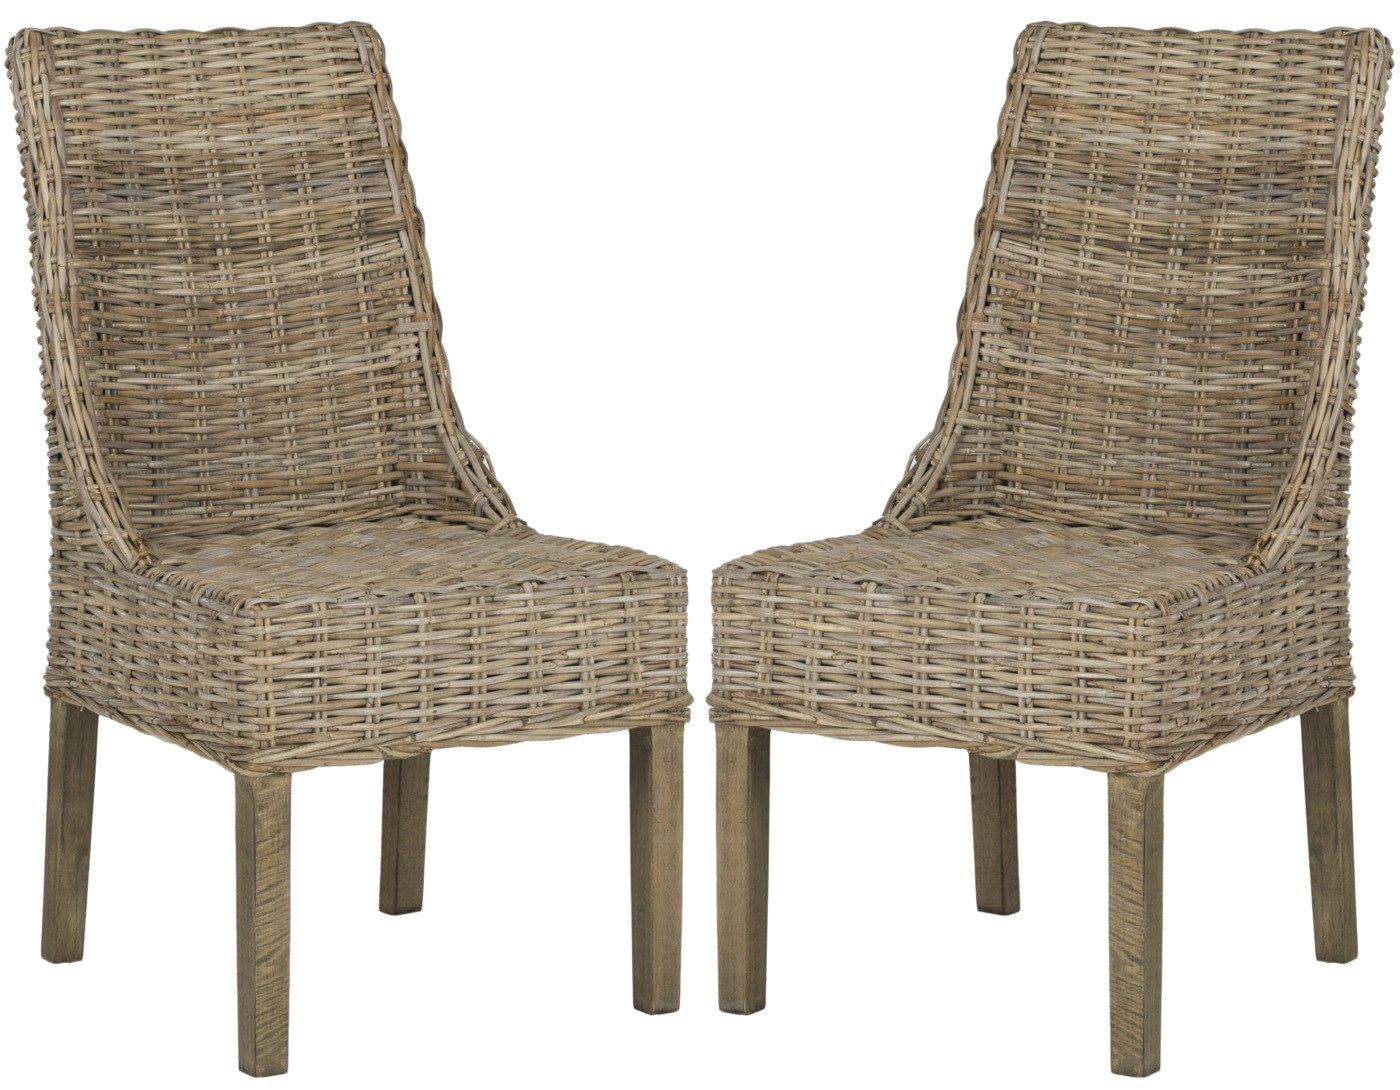 Suncoast Rattan Arm Chair (Set Of 2) Natural Unfinished Outdoor Dining ...